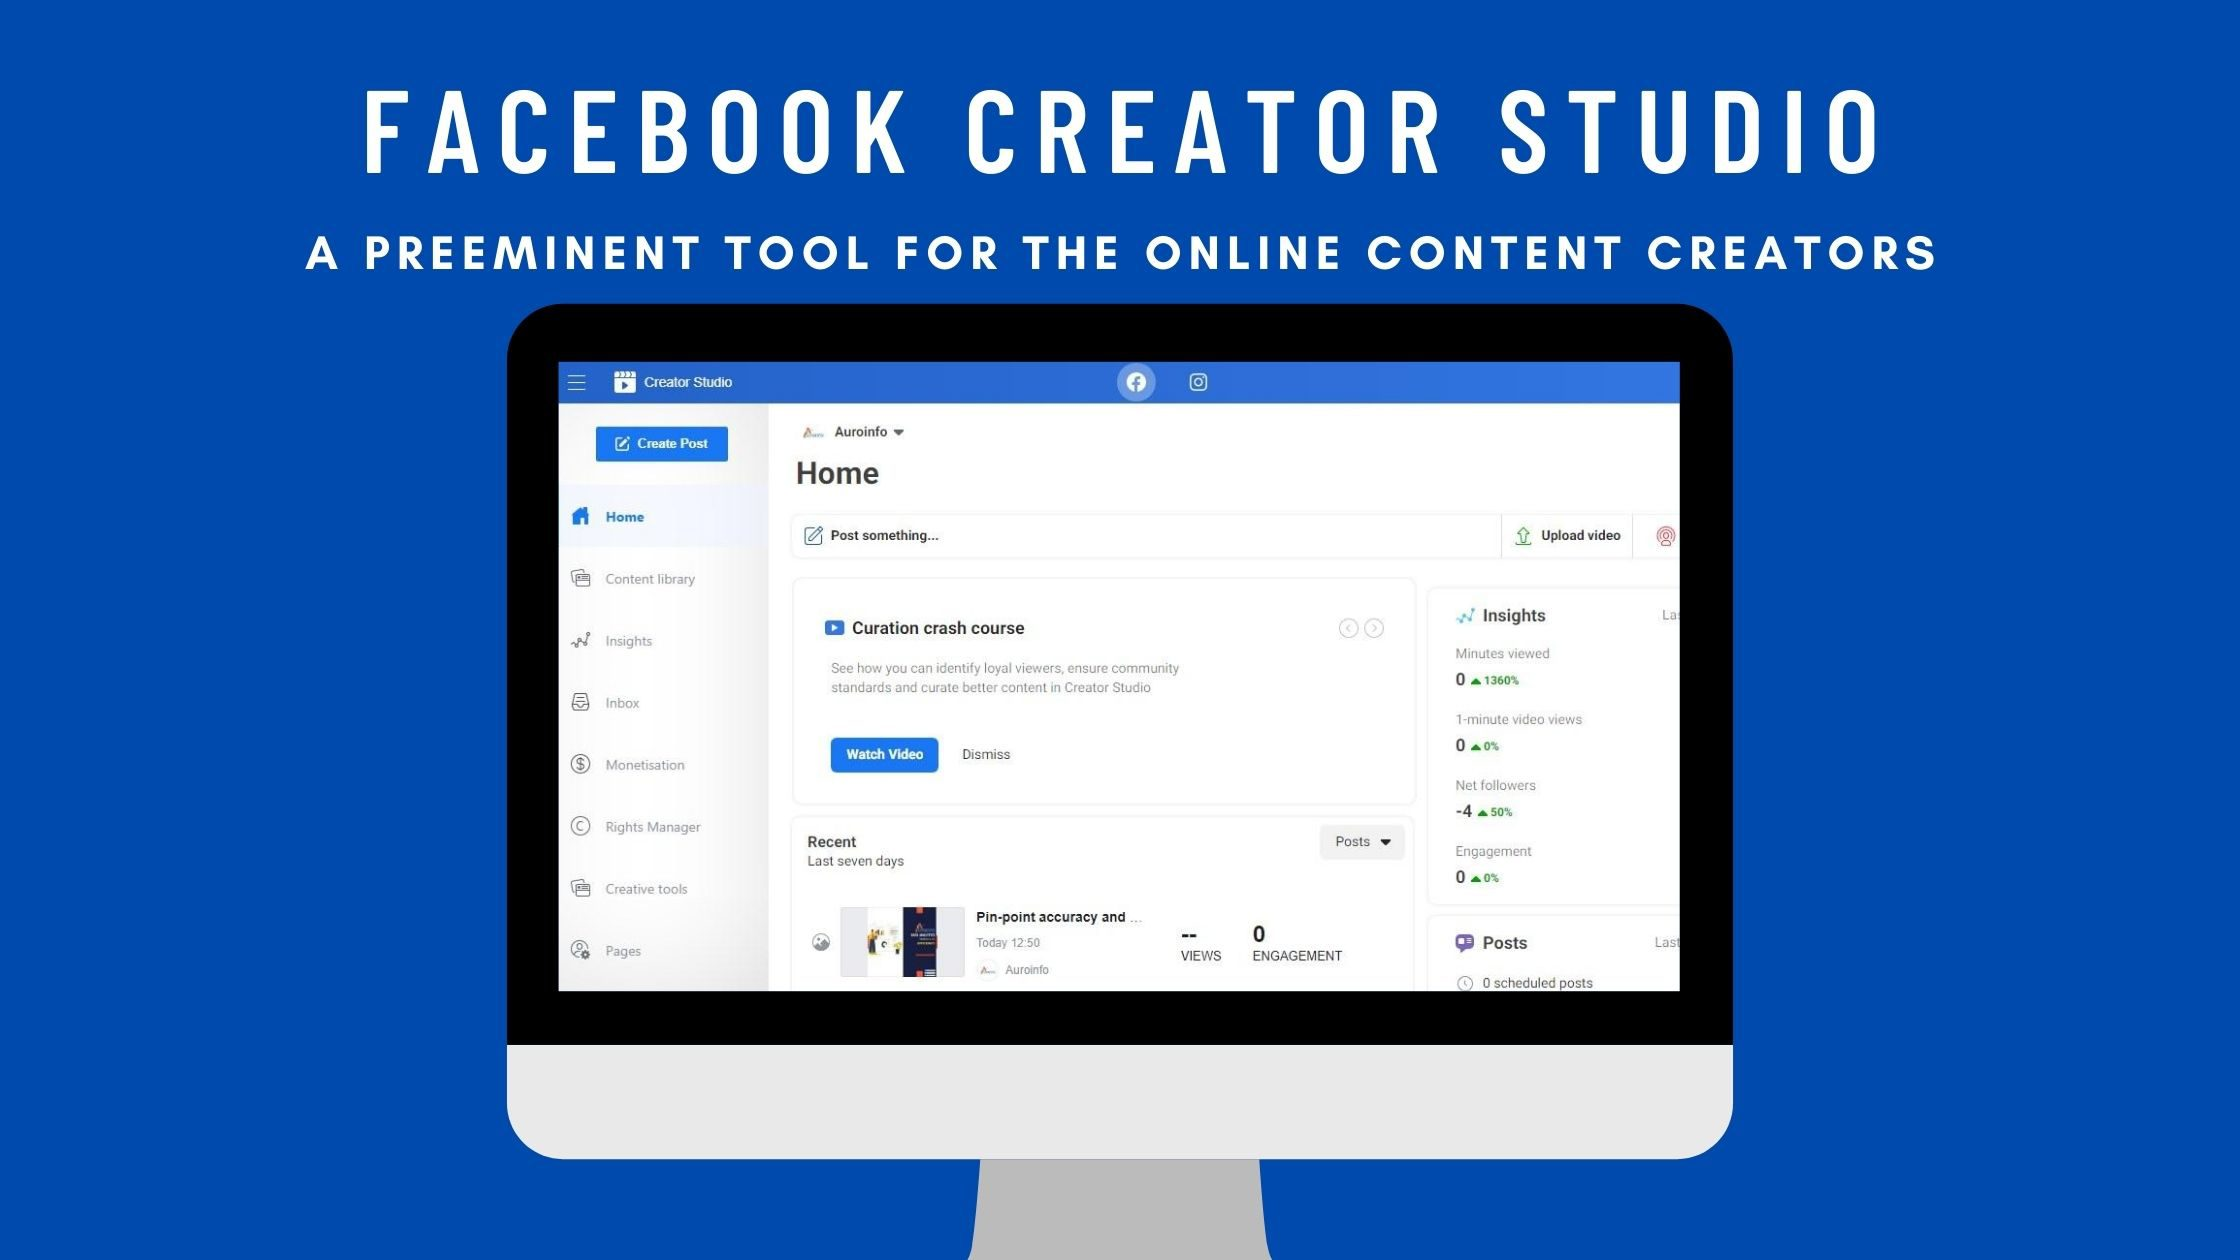 Facebook Creator Studio- A Preeminent Tool For the Online Content Creators